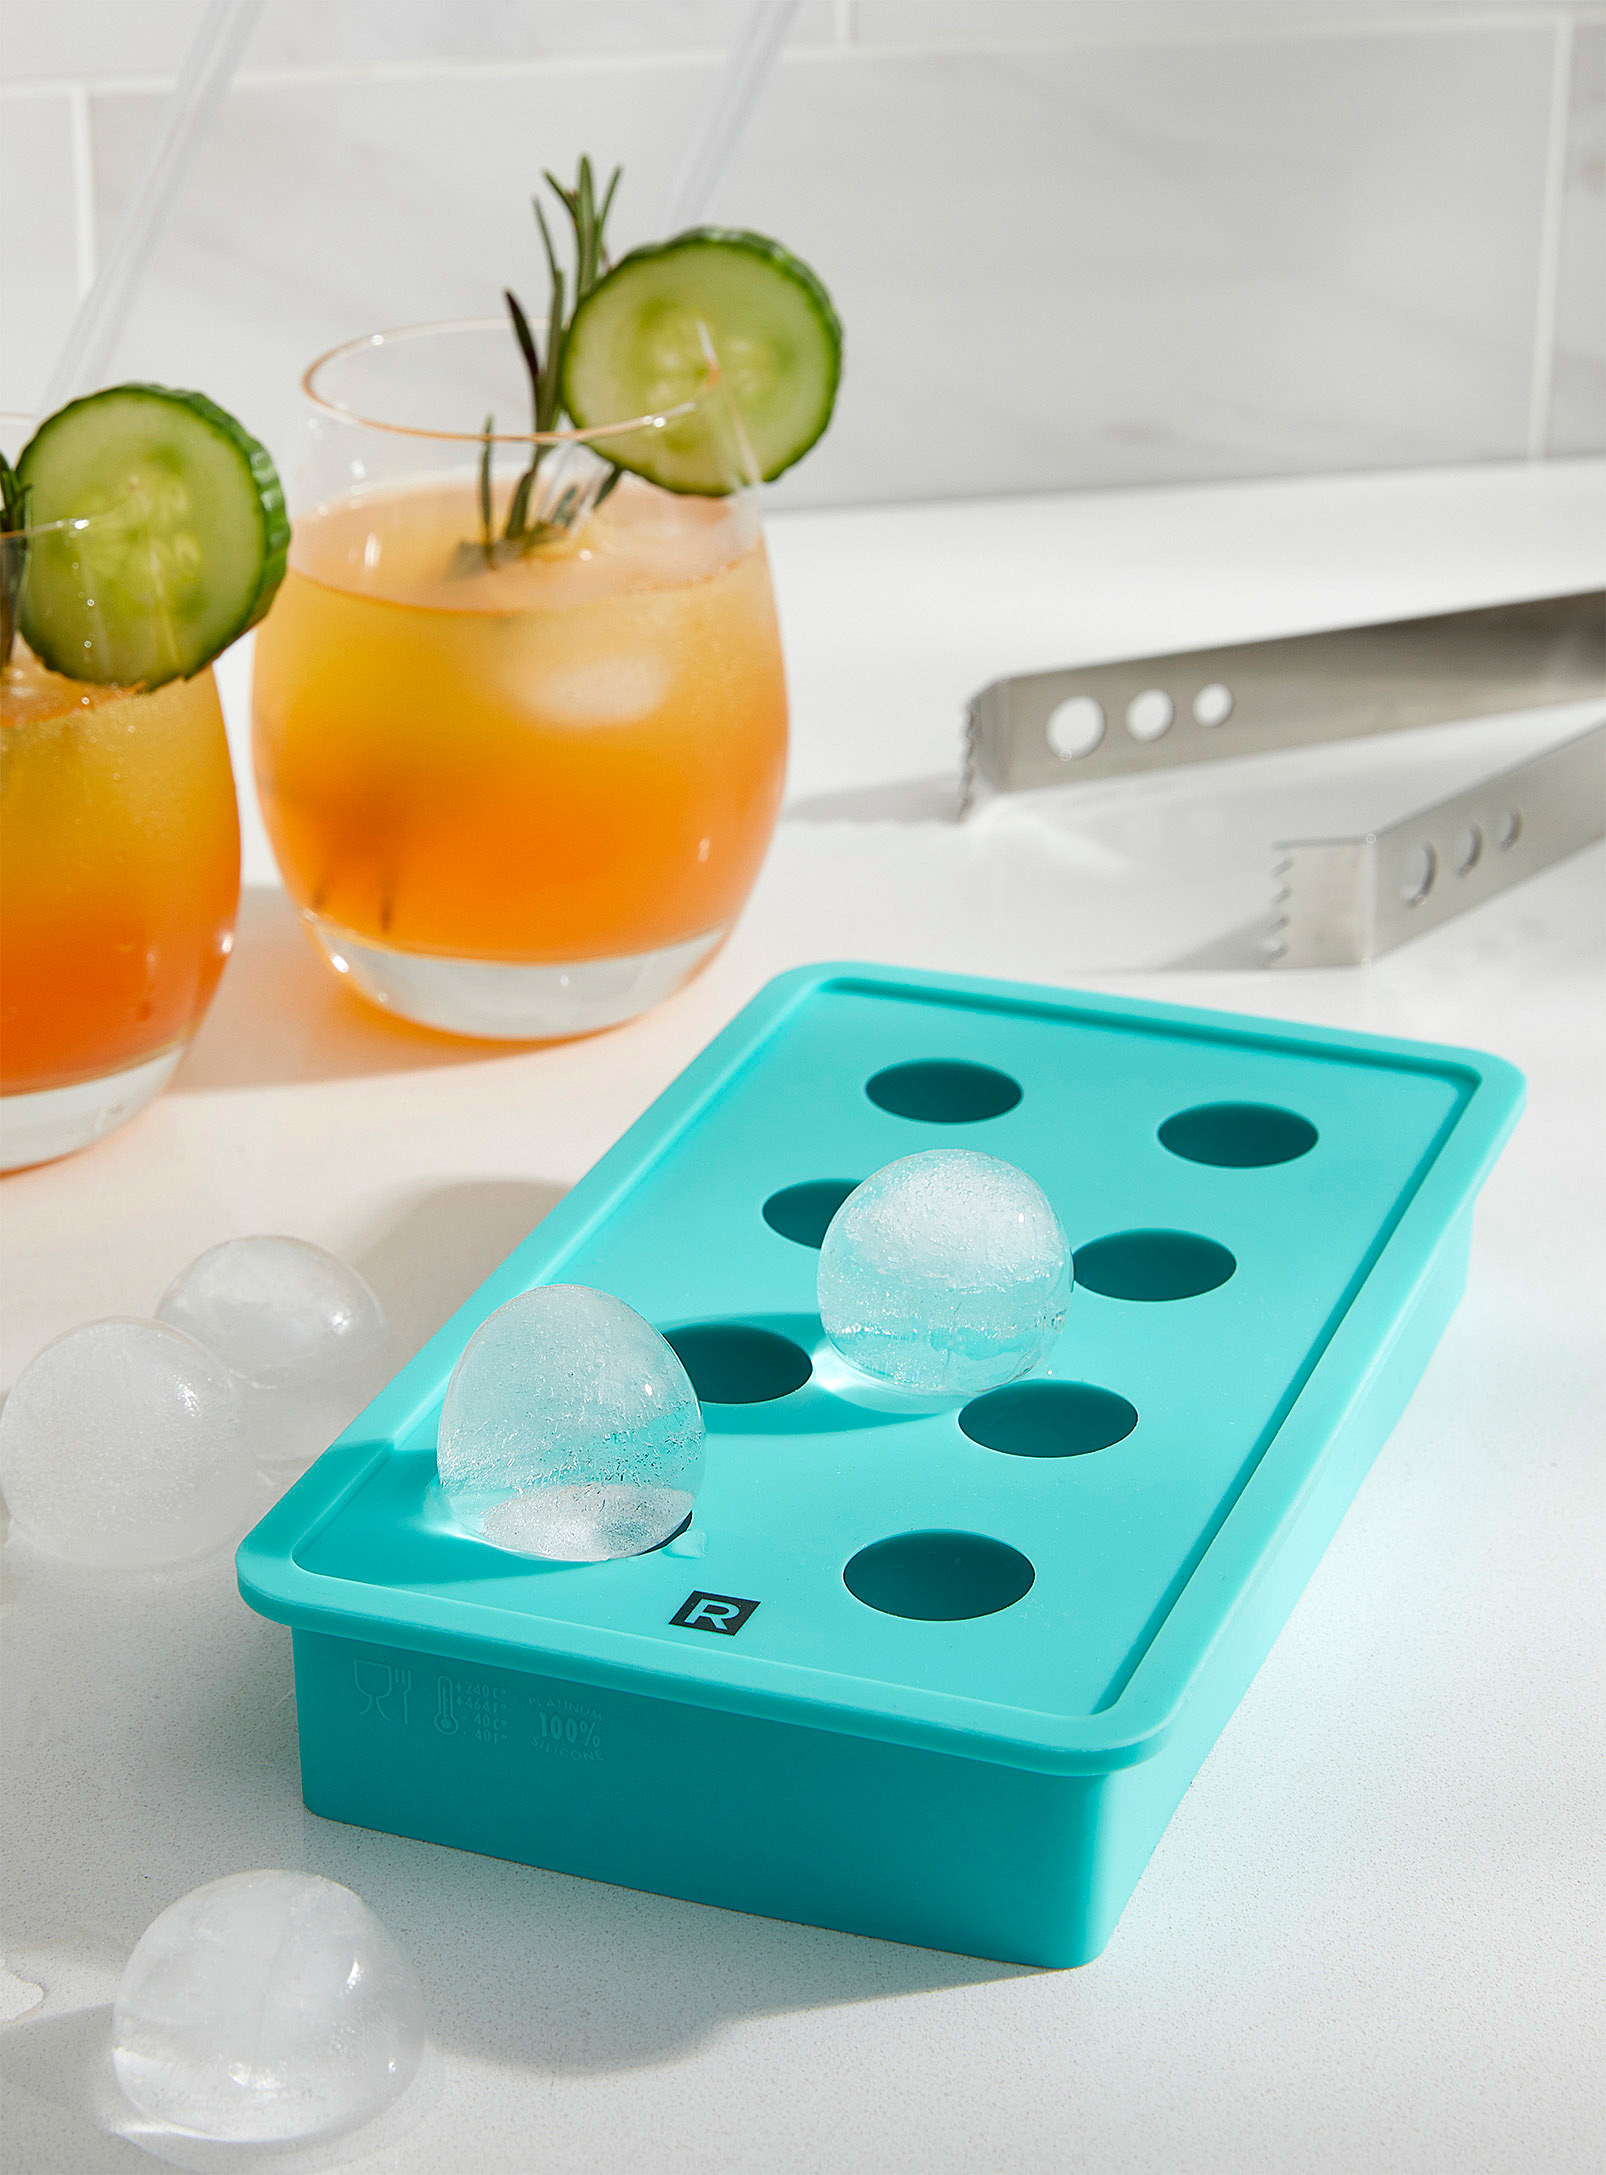 A tray with spherical ice cubs